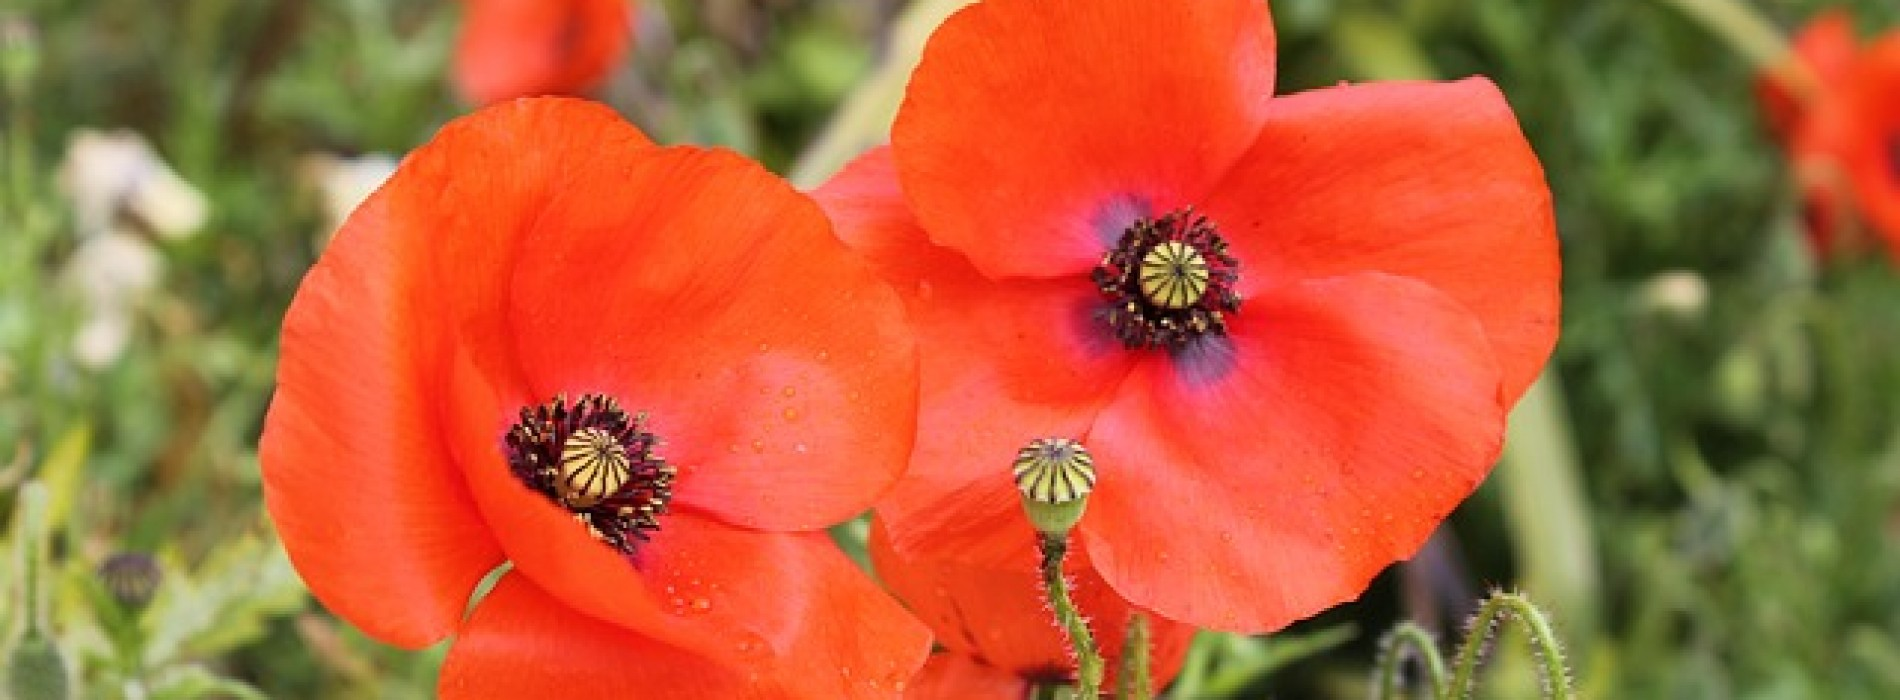 Remembrance Day in Bermondsey and Rotherhithe